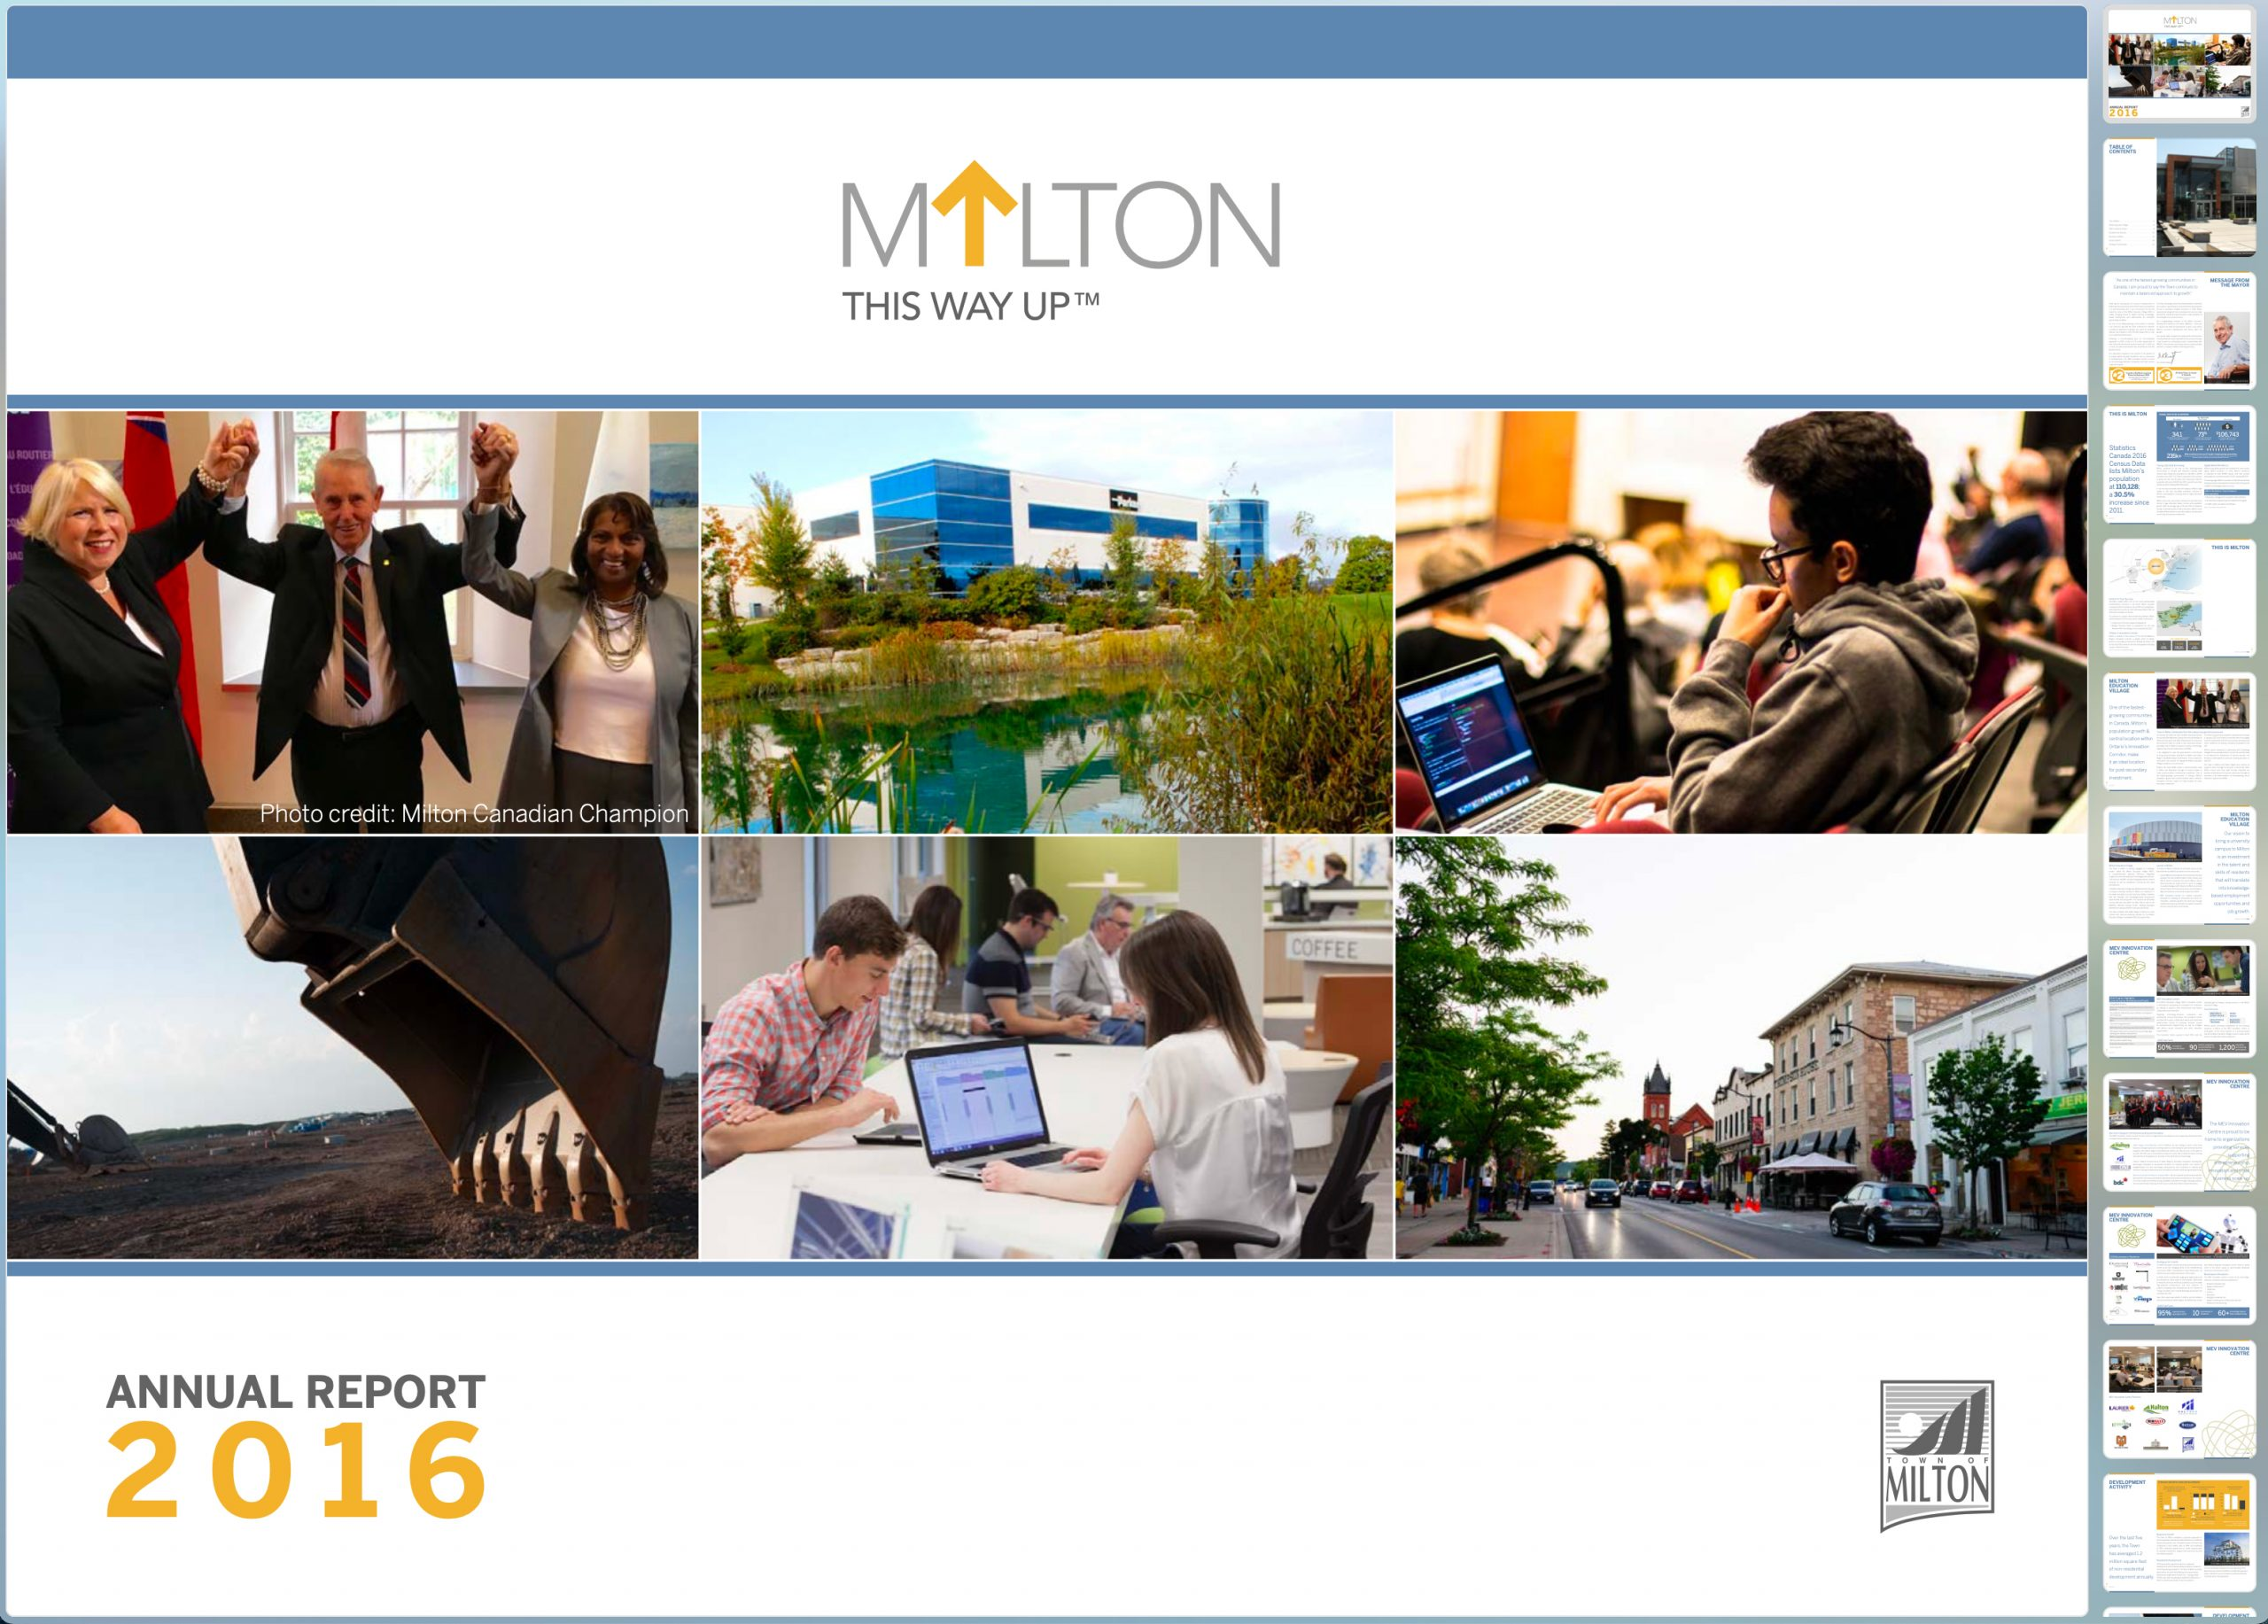 Town_Of_Milton_Annual_Report_2016